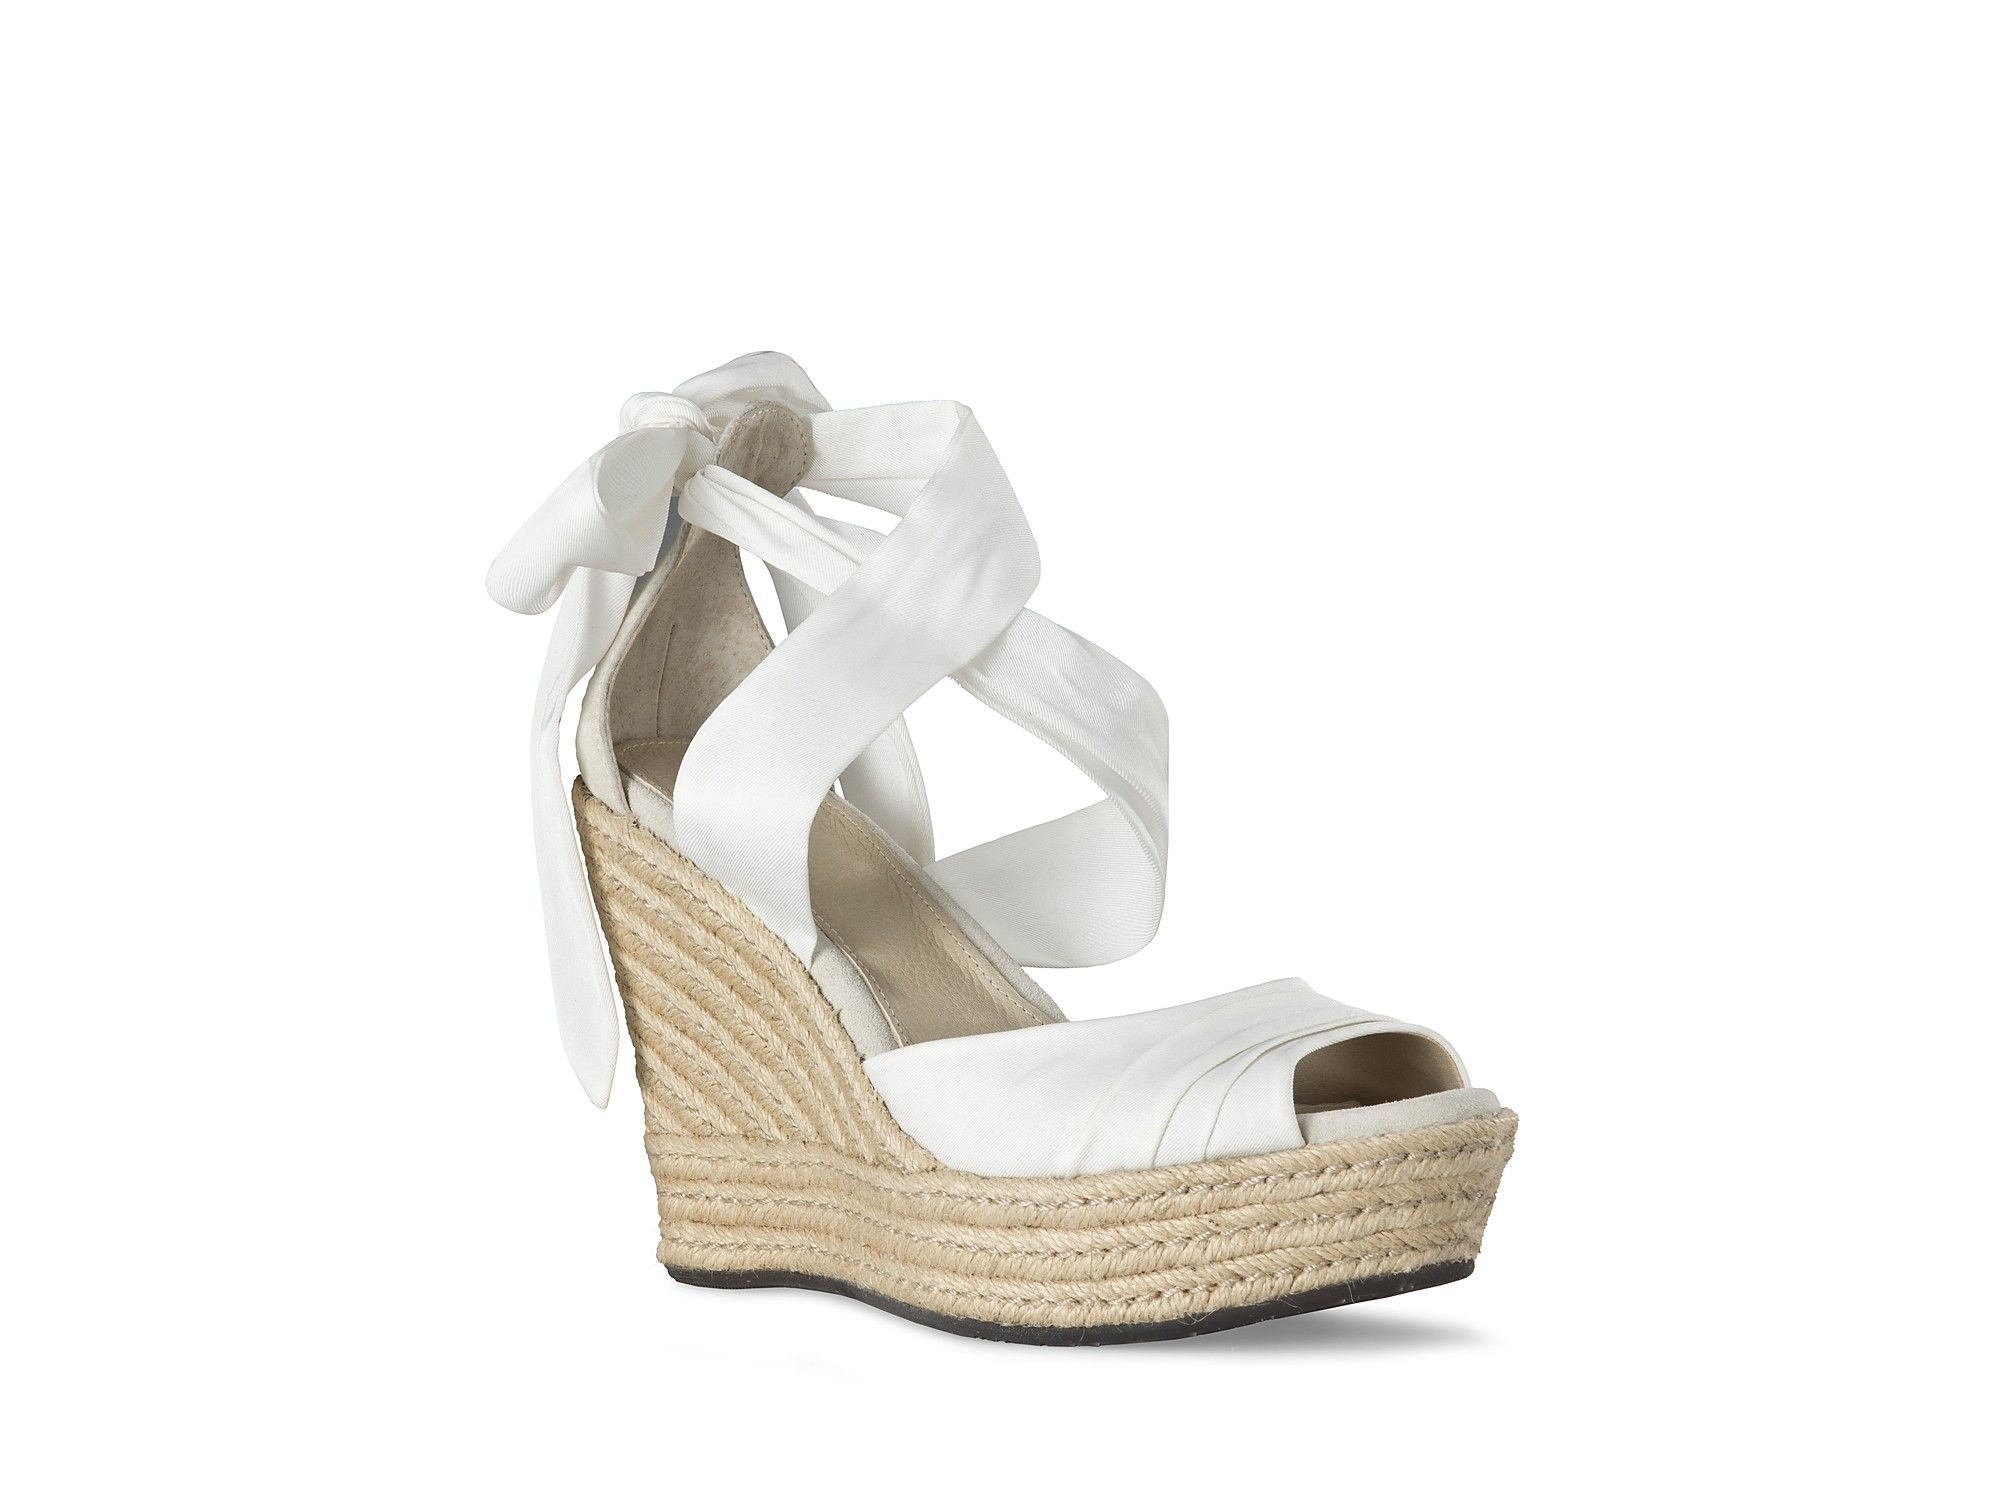 6bcb0843fa4 Lyst - UGG Sandals Lucianna Wrap in White